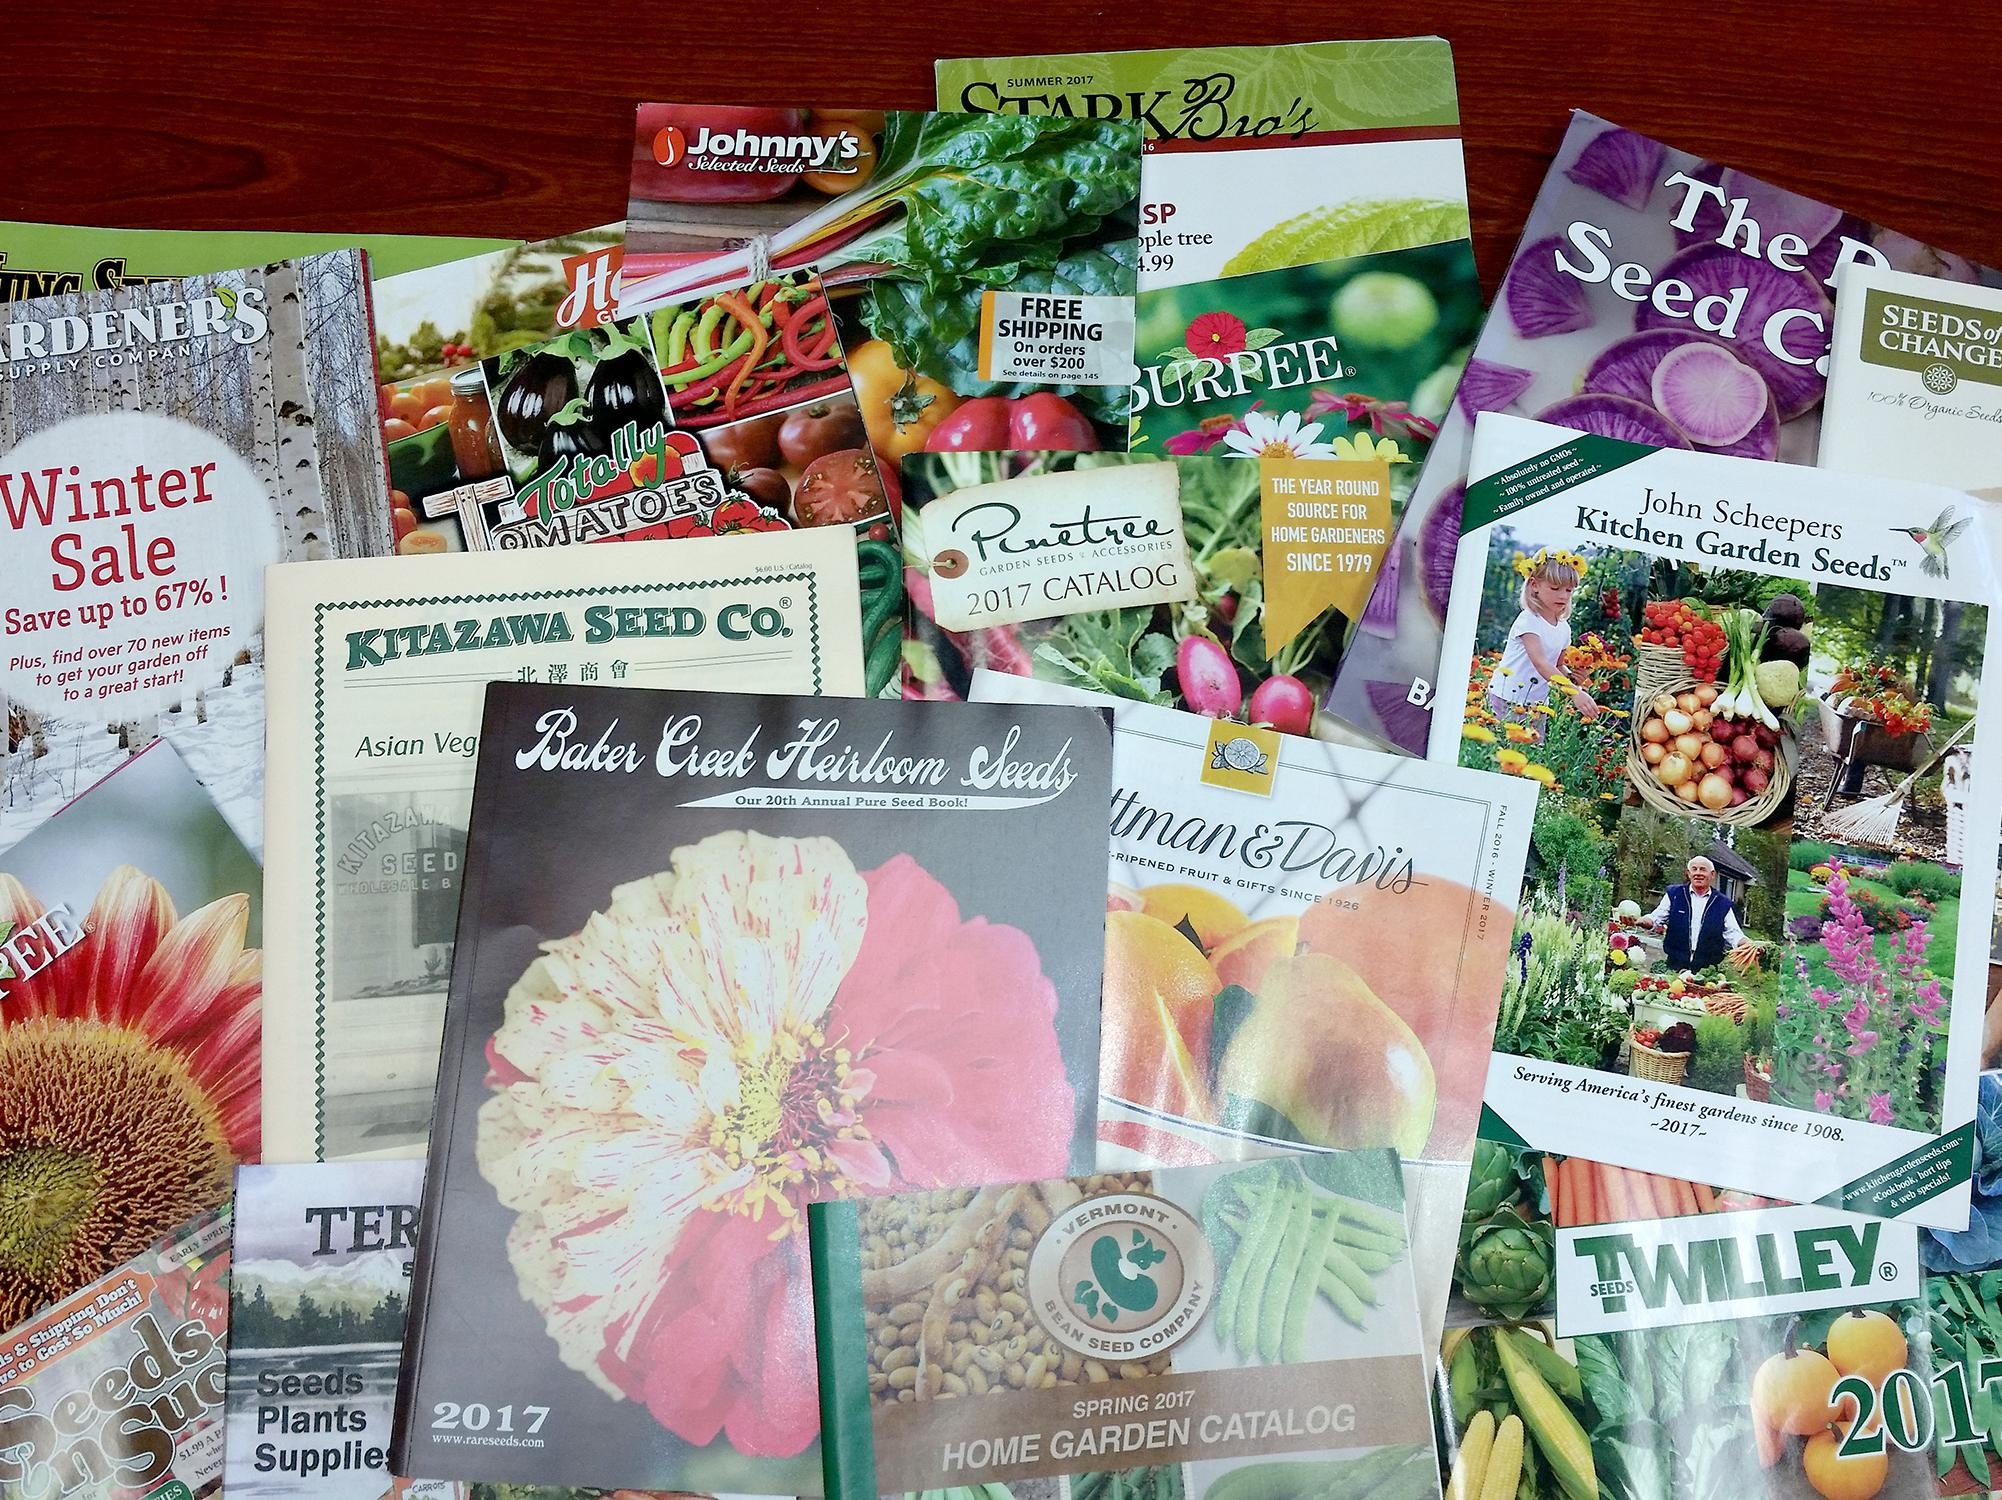 Nothing beats looking at displays of beautiful plants in the garden center, but an advantage of ordering from catalogs is getting exactly the variety you want and maybe even trying news ones. (Photo by MSU Extension/Gary Bachman)